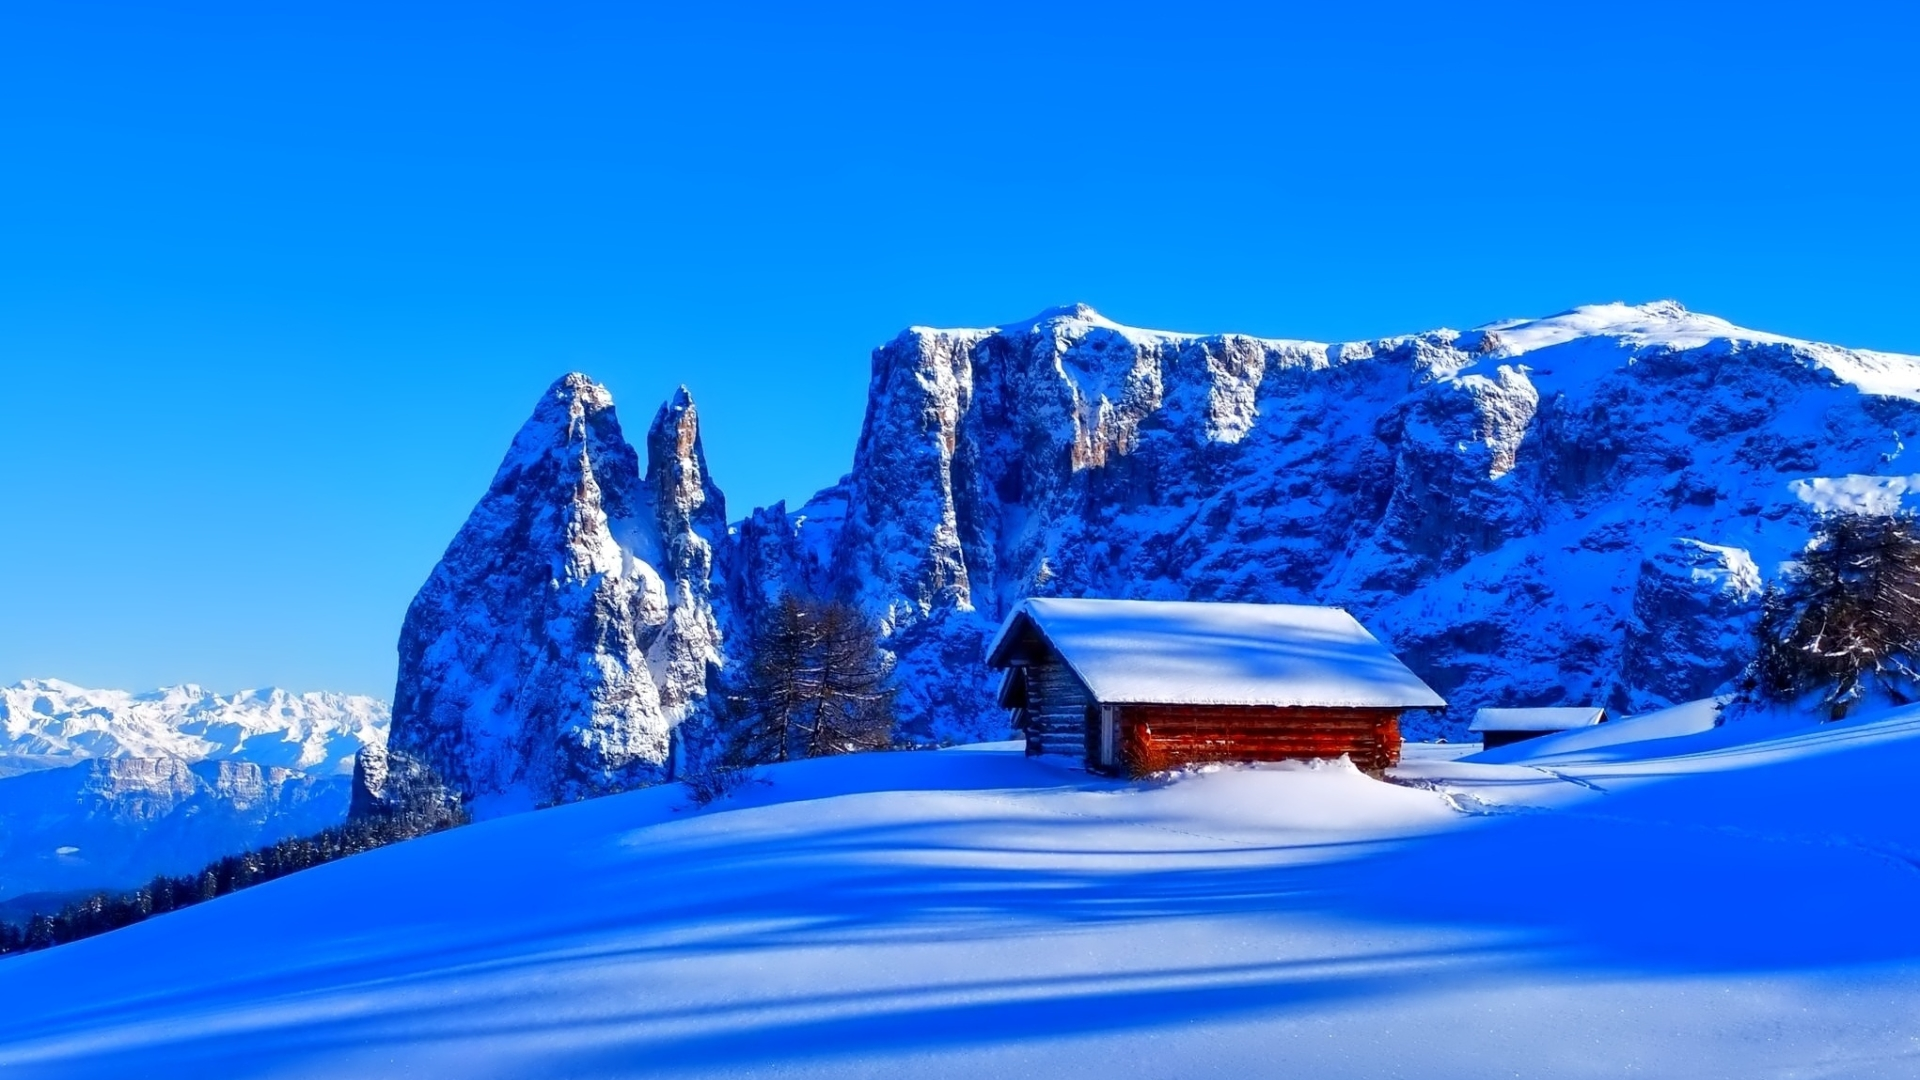 1920x1080 Mountains Snow Hut 1080p Laptop Full Hd Wallpaper Hd Nature 4k Wallpapers Images Photos And Background